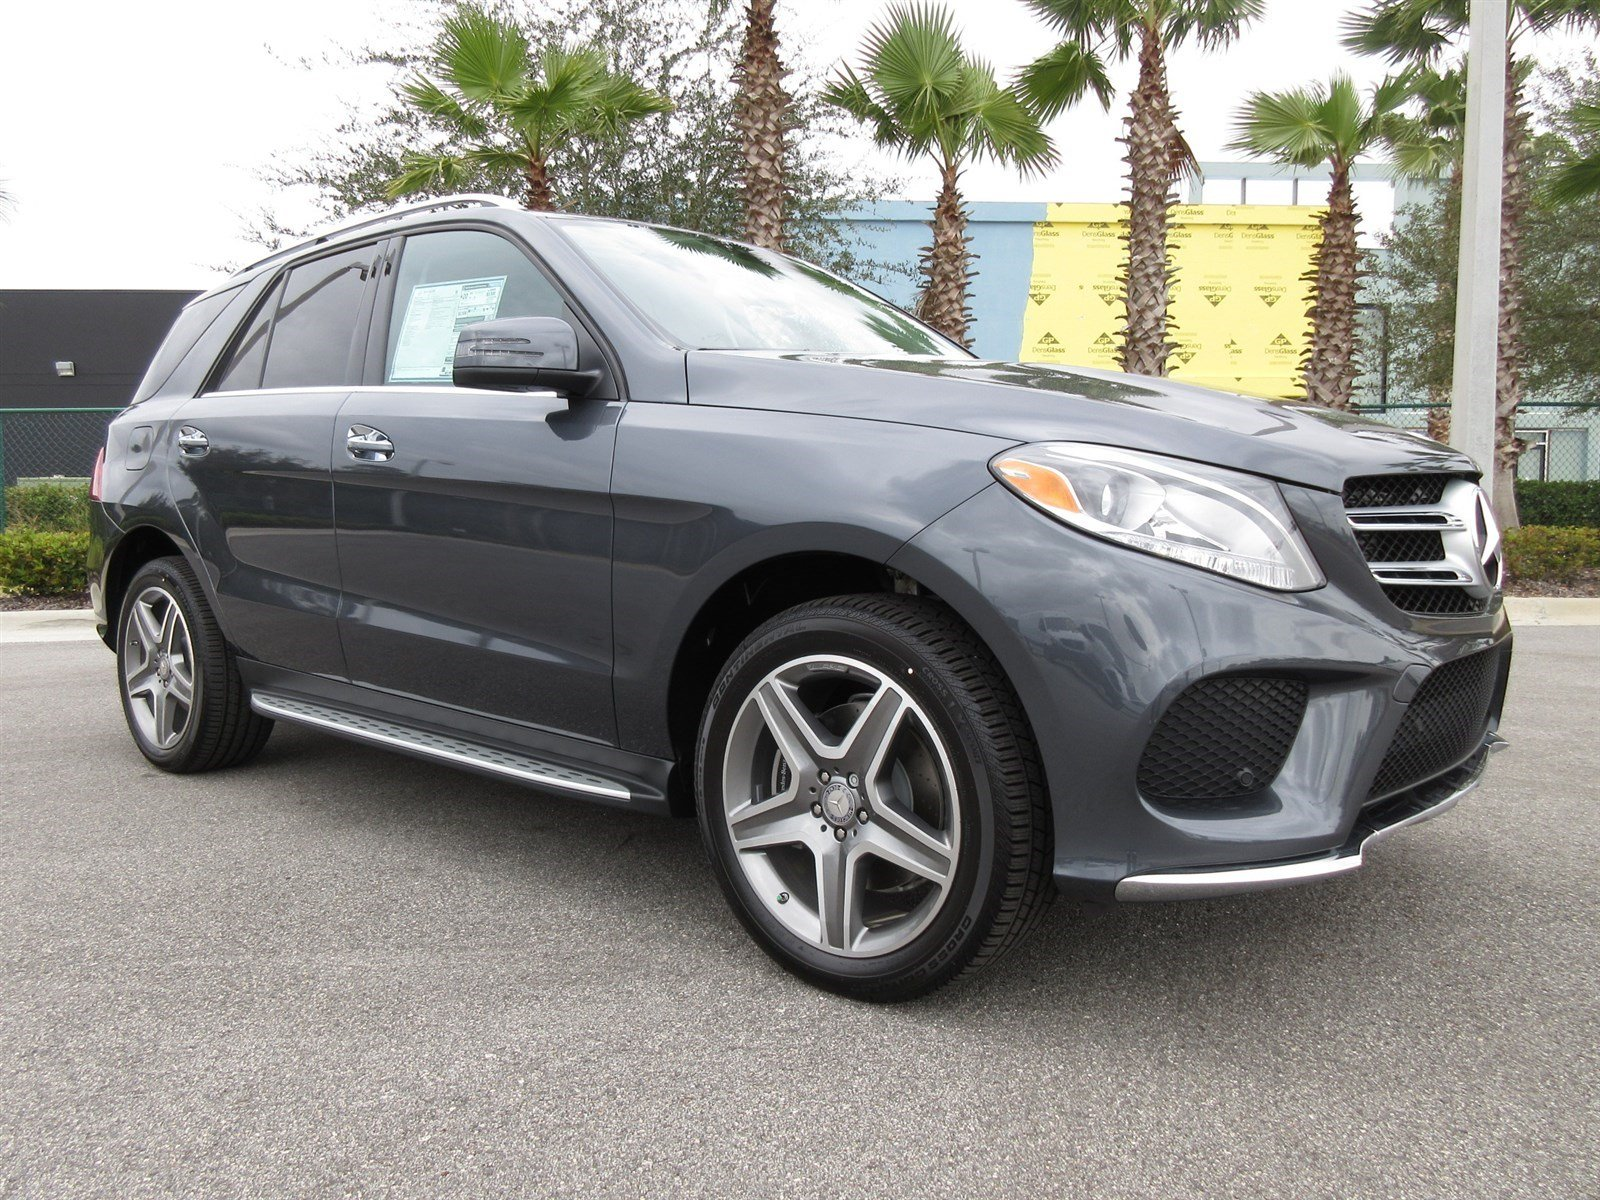 New 2016 mercedes benz gle gle350 suv in daytona beach for Mercedes benz daytona beach